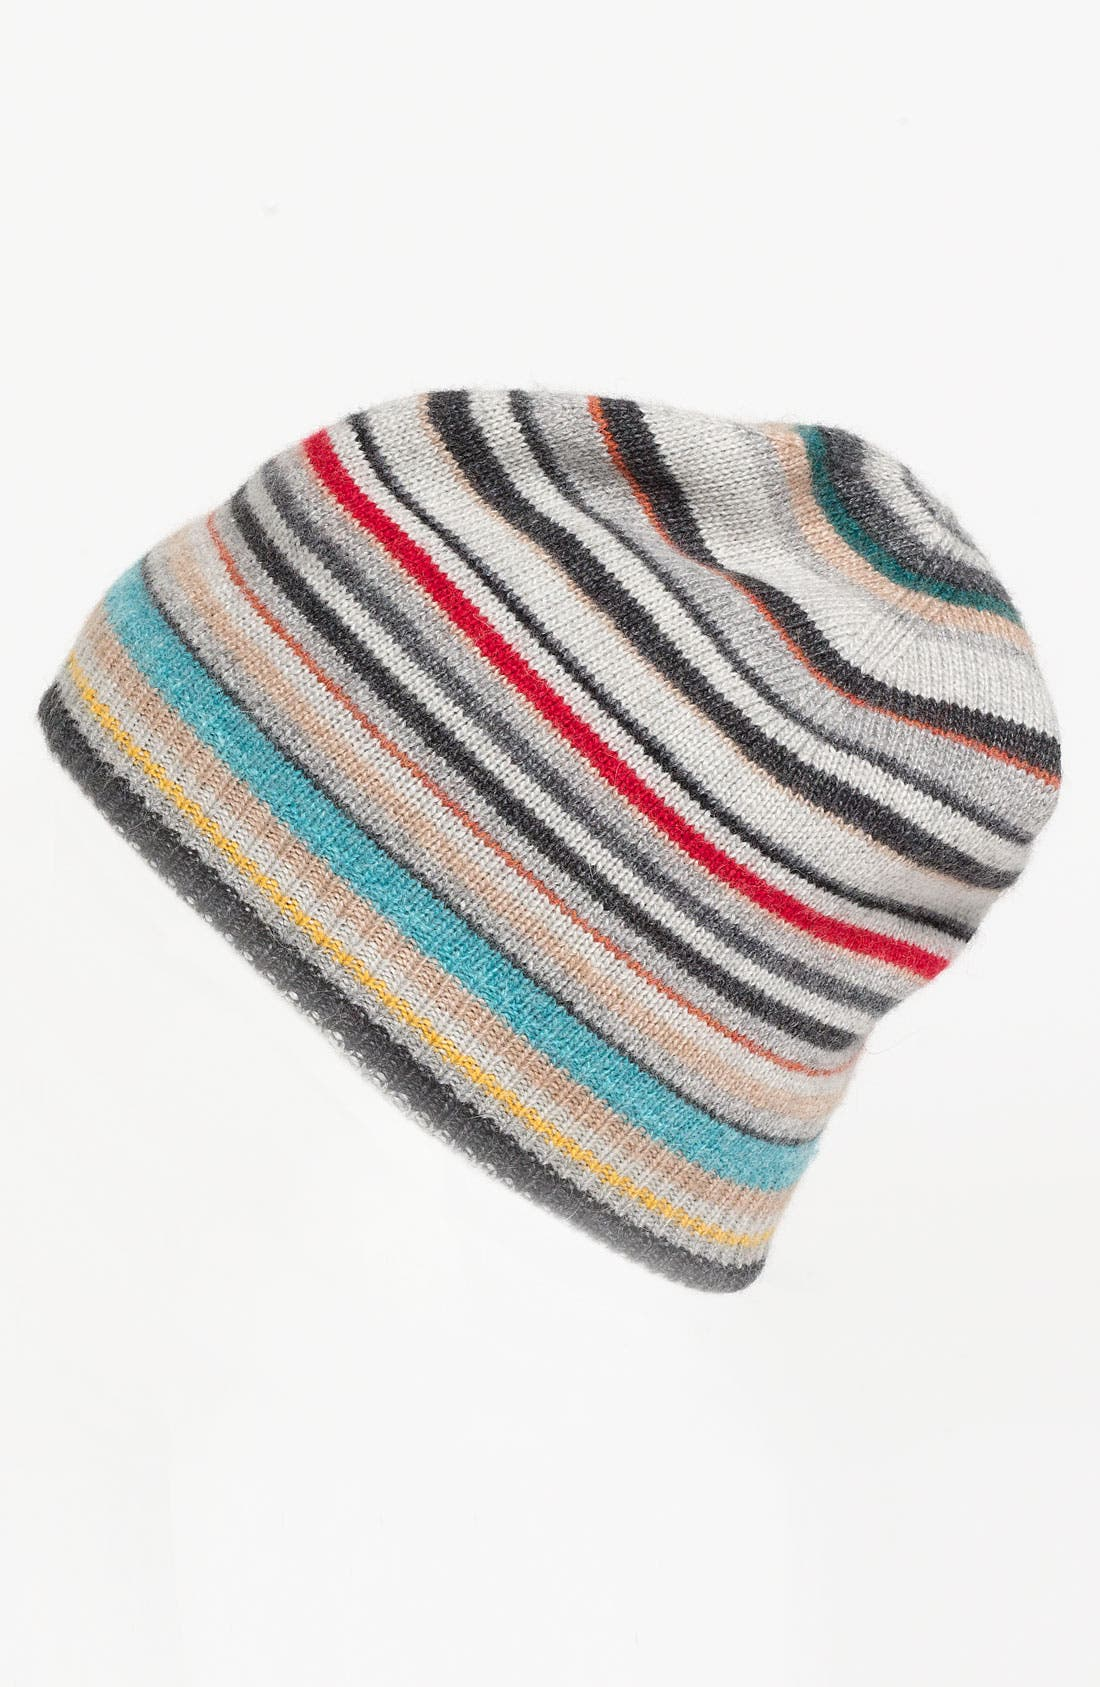 Main Image - Paul Smith Accessories Stripe Knit Cap